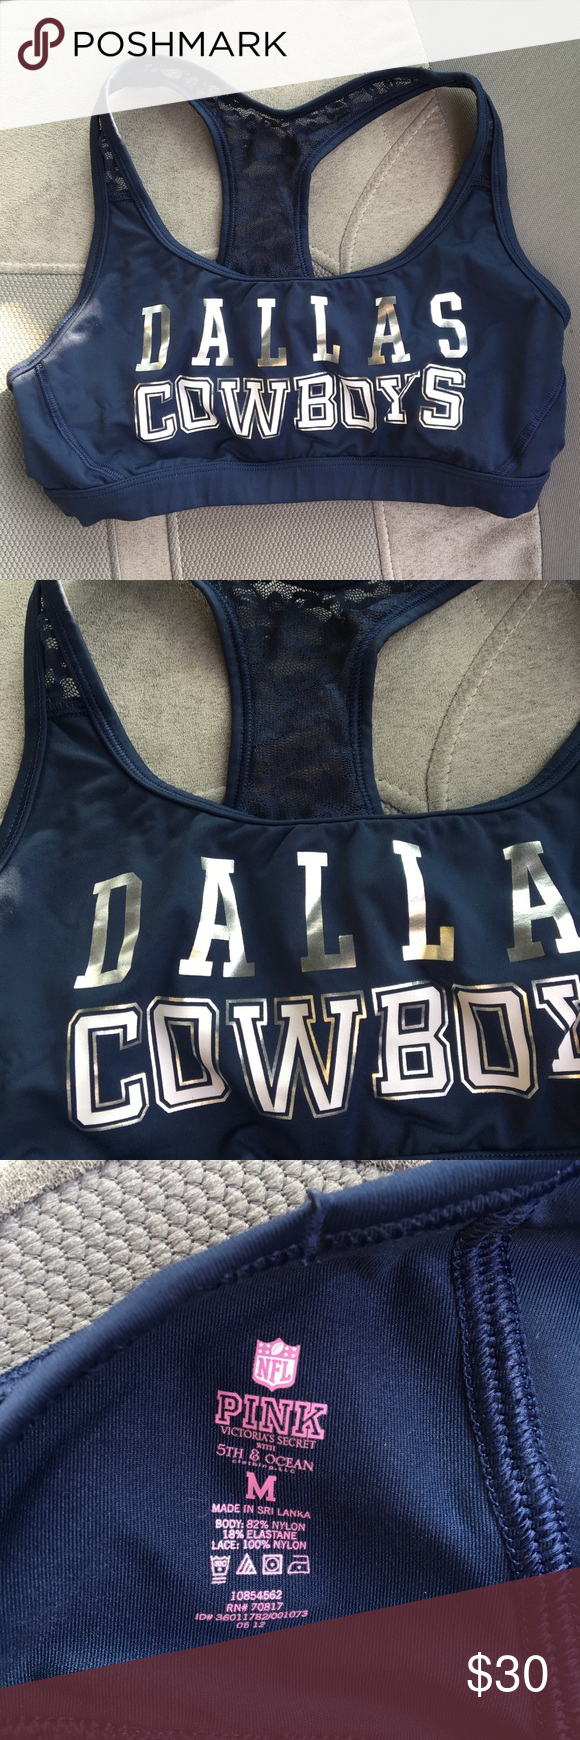 497daa1510  VS Pink  RARE NFL Dallas Cowboys Sports Bra This royal blue sports bra is  in great condition. It is like new and rare